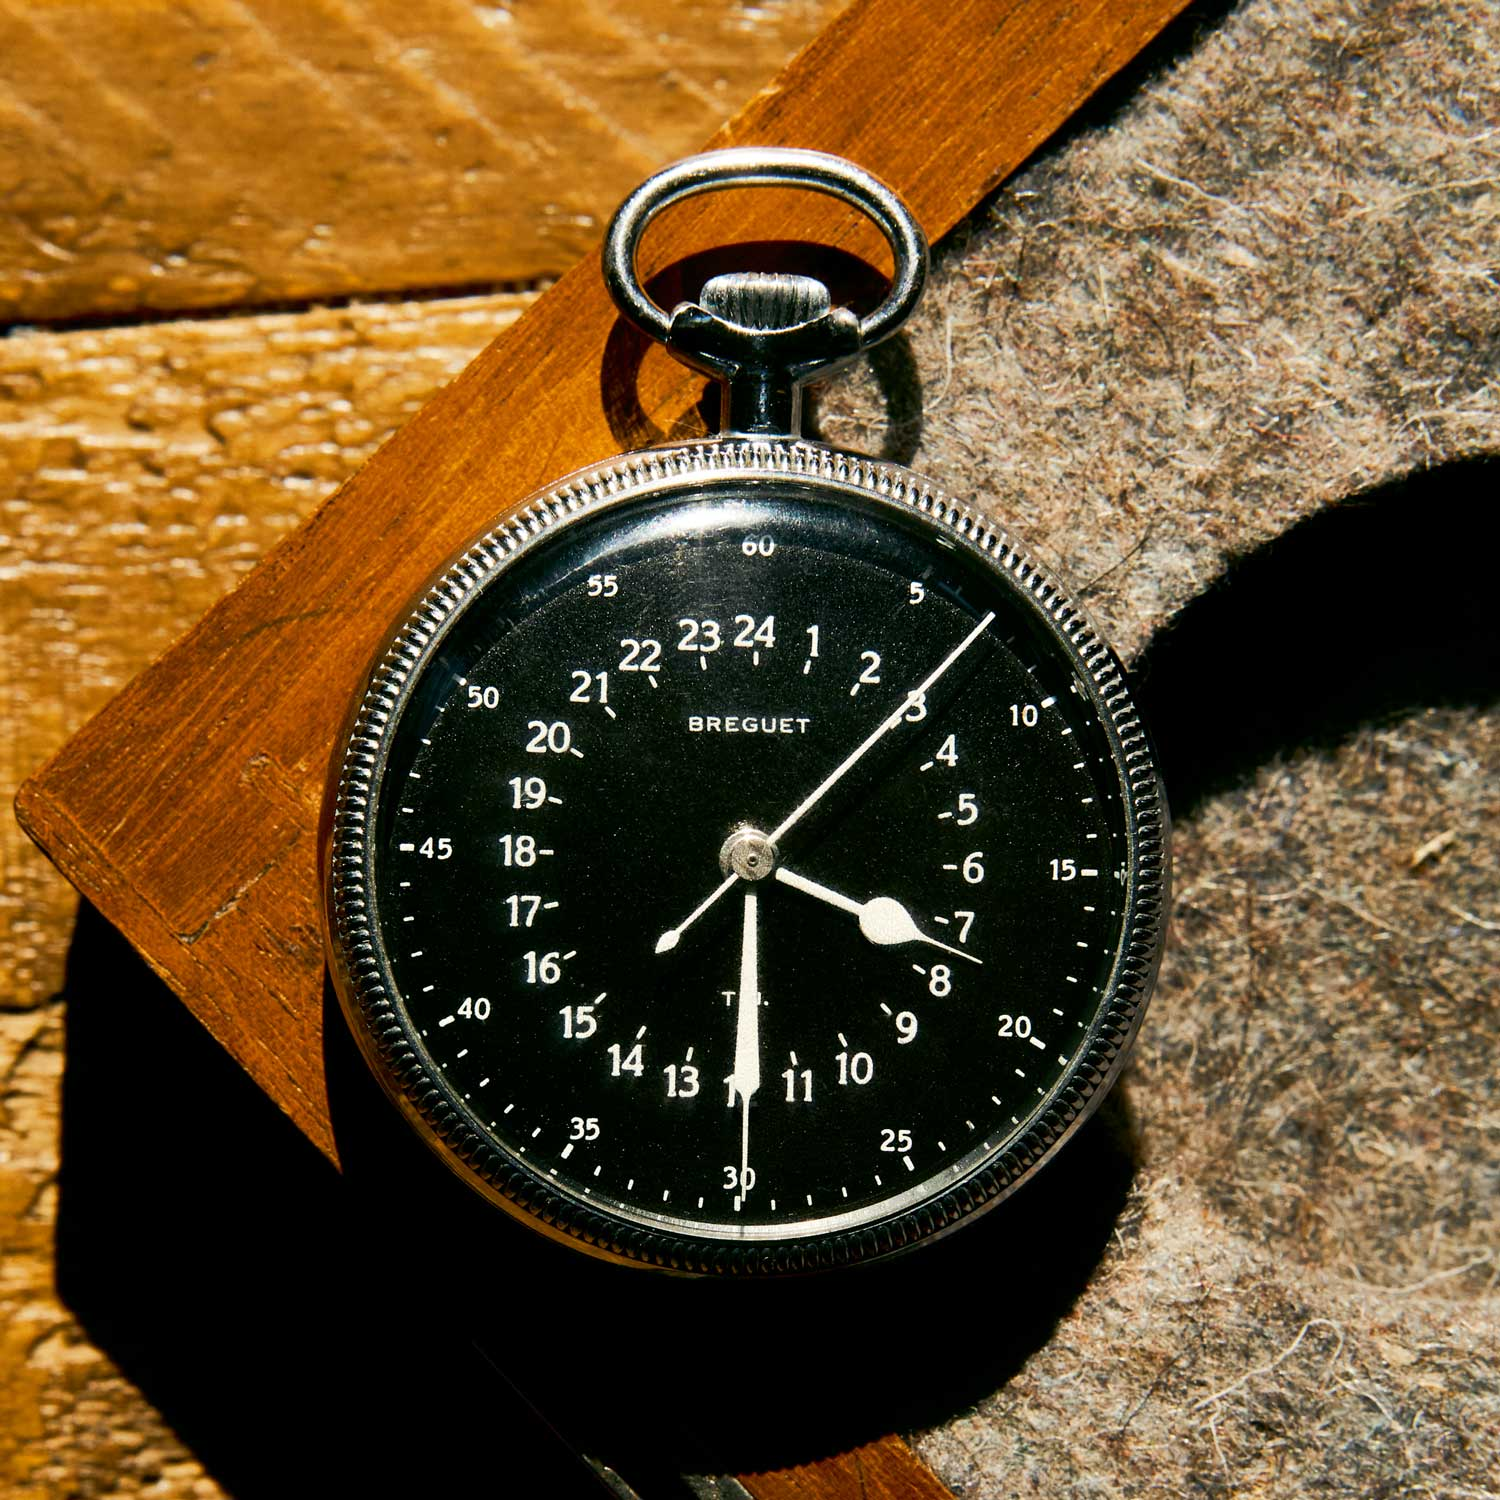 A rare Breguet dashboard pocket watch used to calculate longitude.